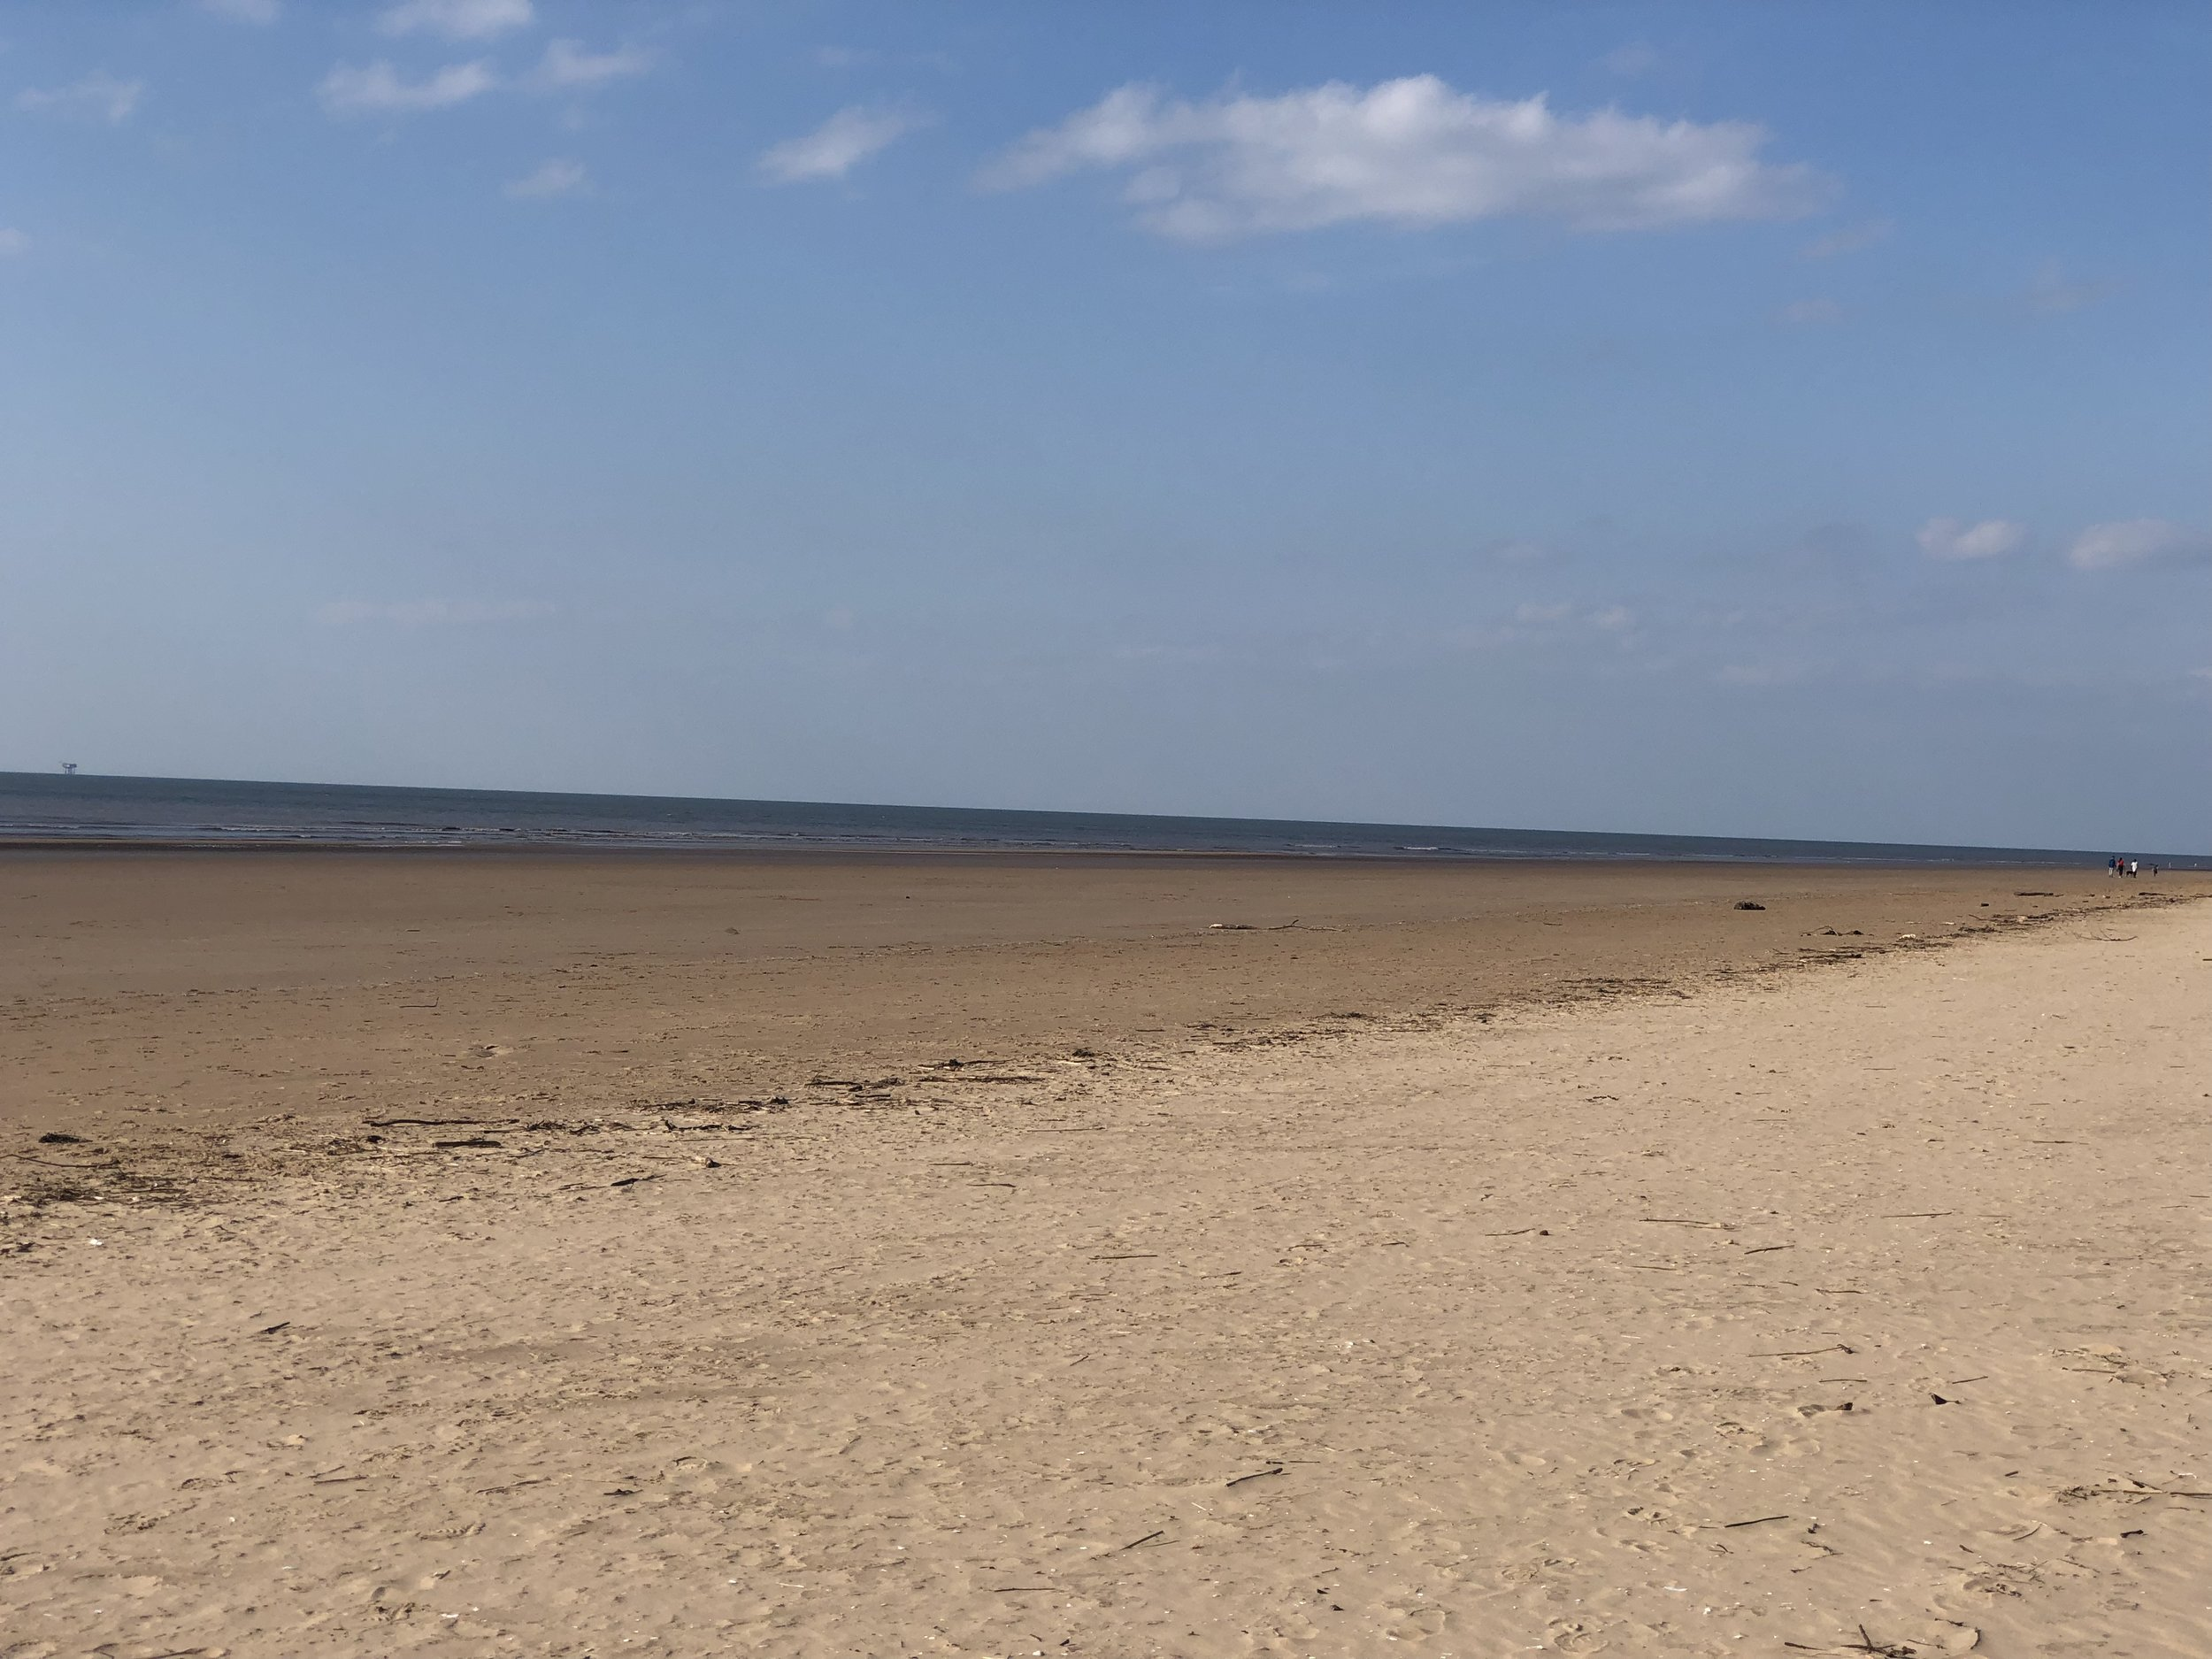 St Joseph's Prayer Centre is located on the coast in Formby